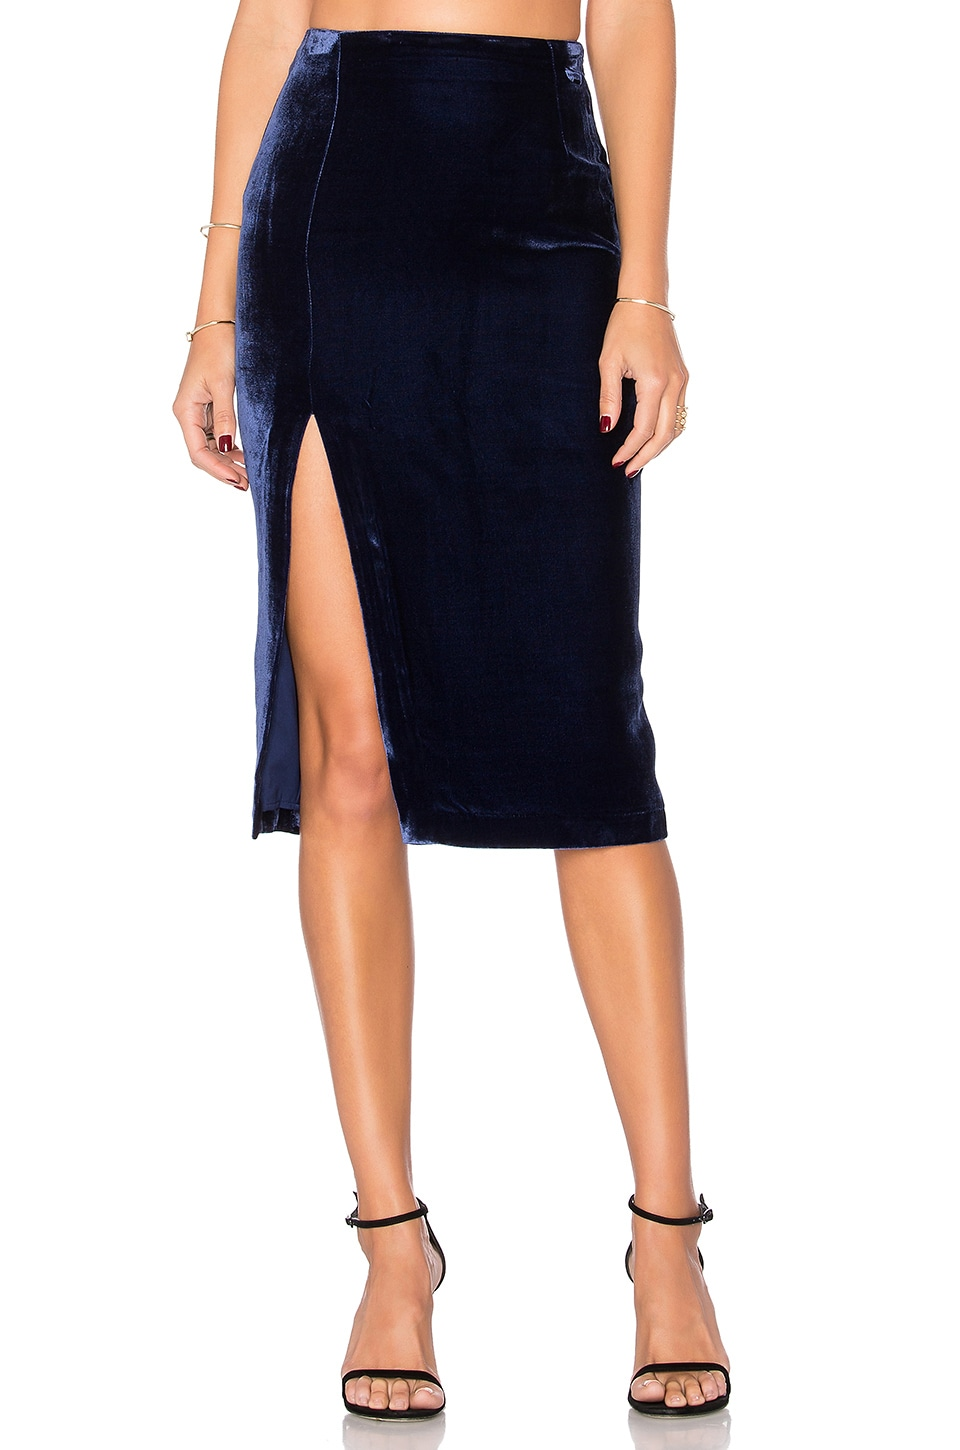 KENDALL + KYLIE Velvet Midi Skirt in Midnight Navy